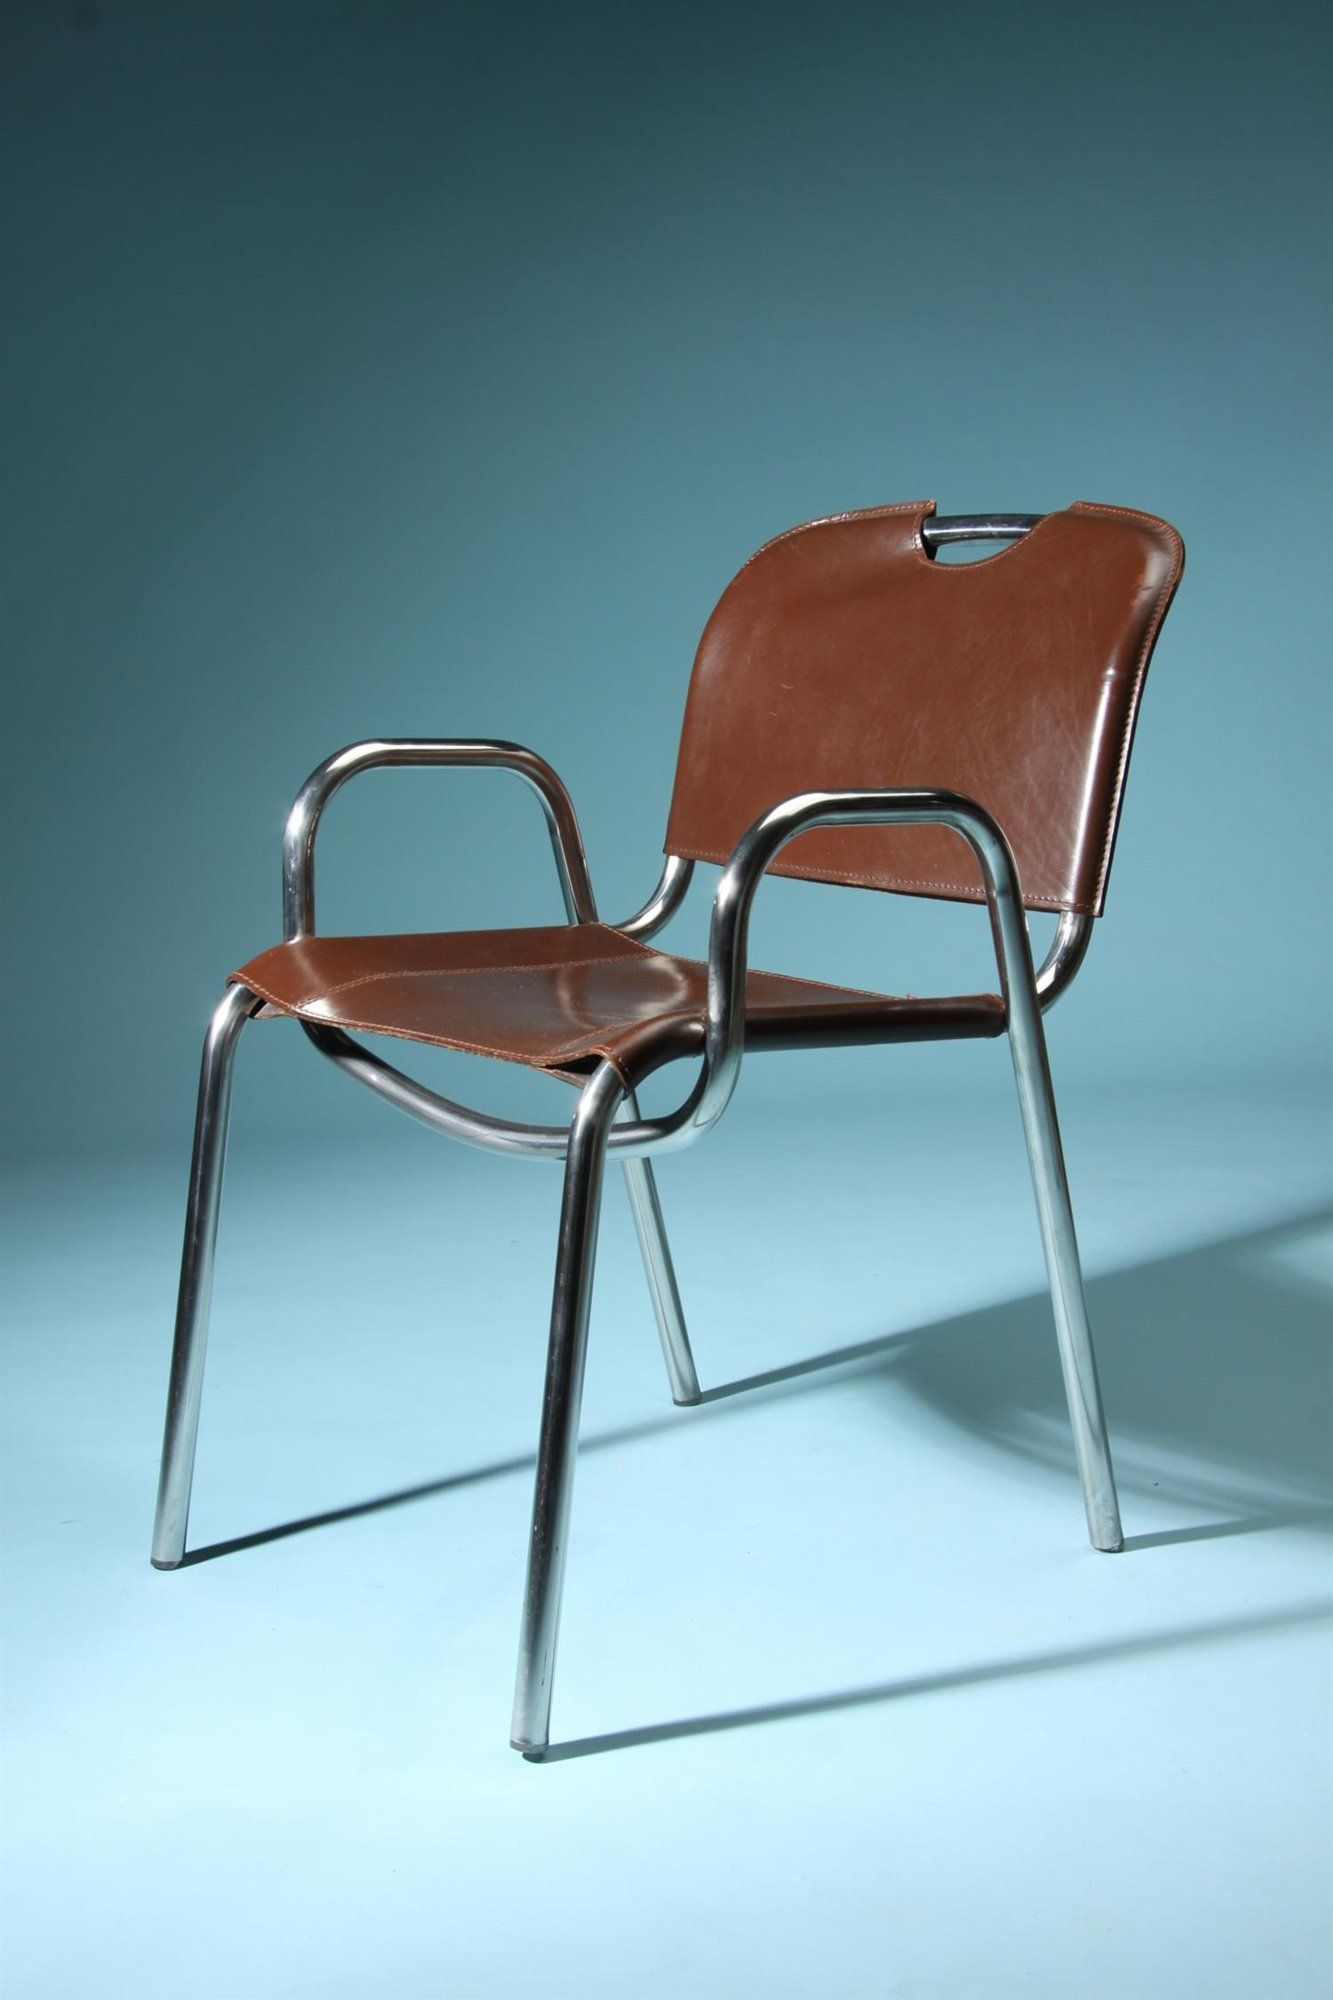 Google Chair Achille Castiglioni Chair Google Search Great Modern